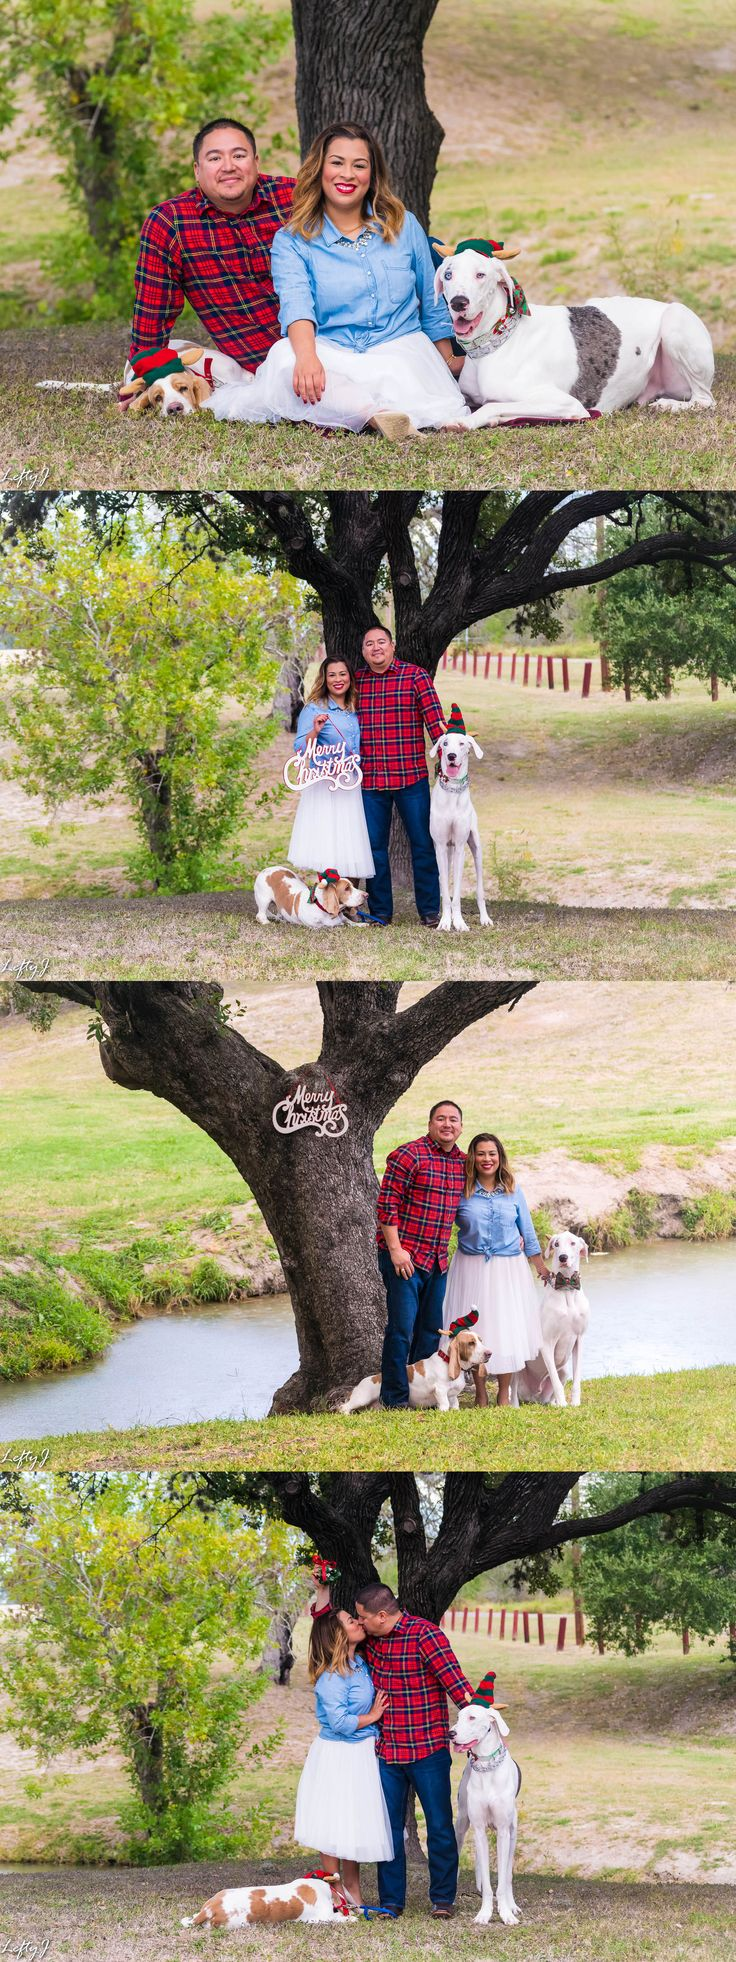 Despite the sudden downpour of rain catching us off guard, we were able to get some great shots of the Contreras family.  Contact us to book your Christmas session today. See more on our website. Link in bio.  #corpuschristiphotography #corpuschristiphotographer #christmasphotos #christmaspictures #familyphotography #familyphotos #dogphotography